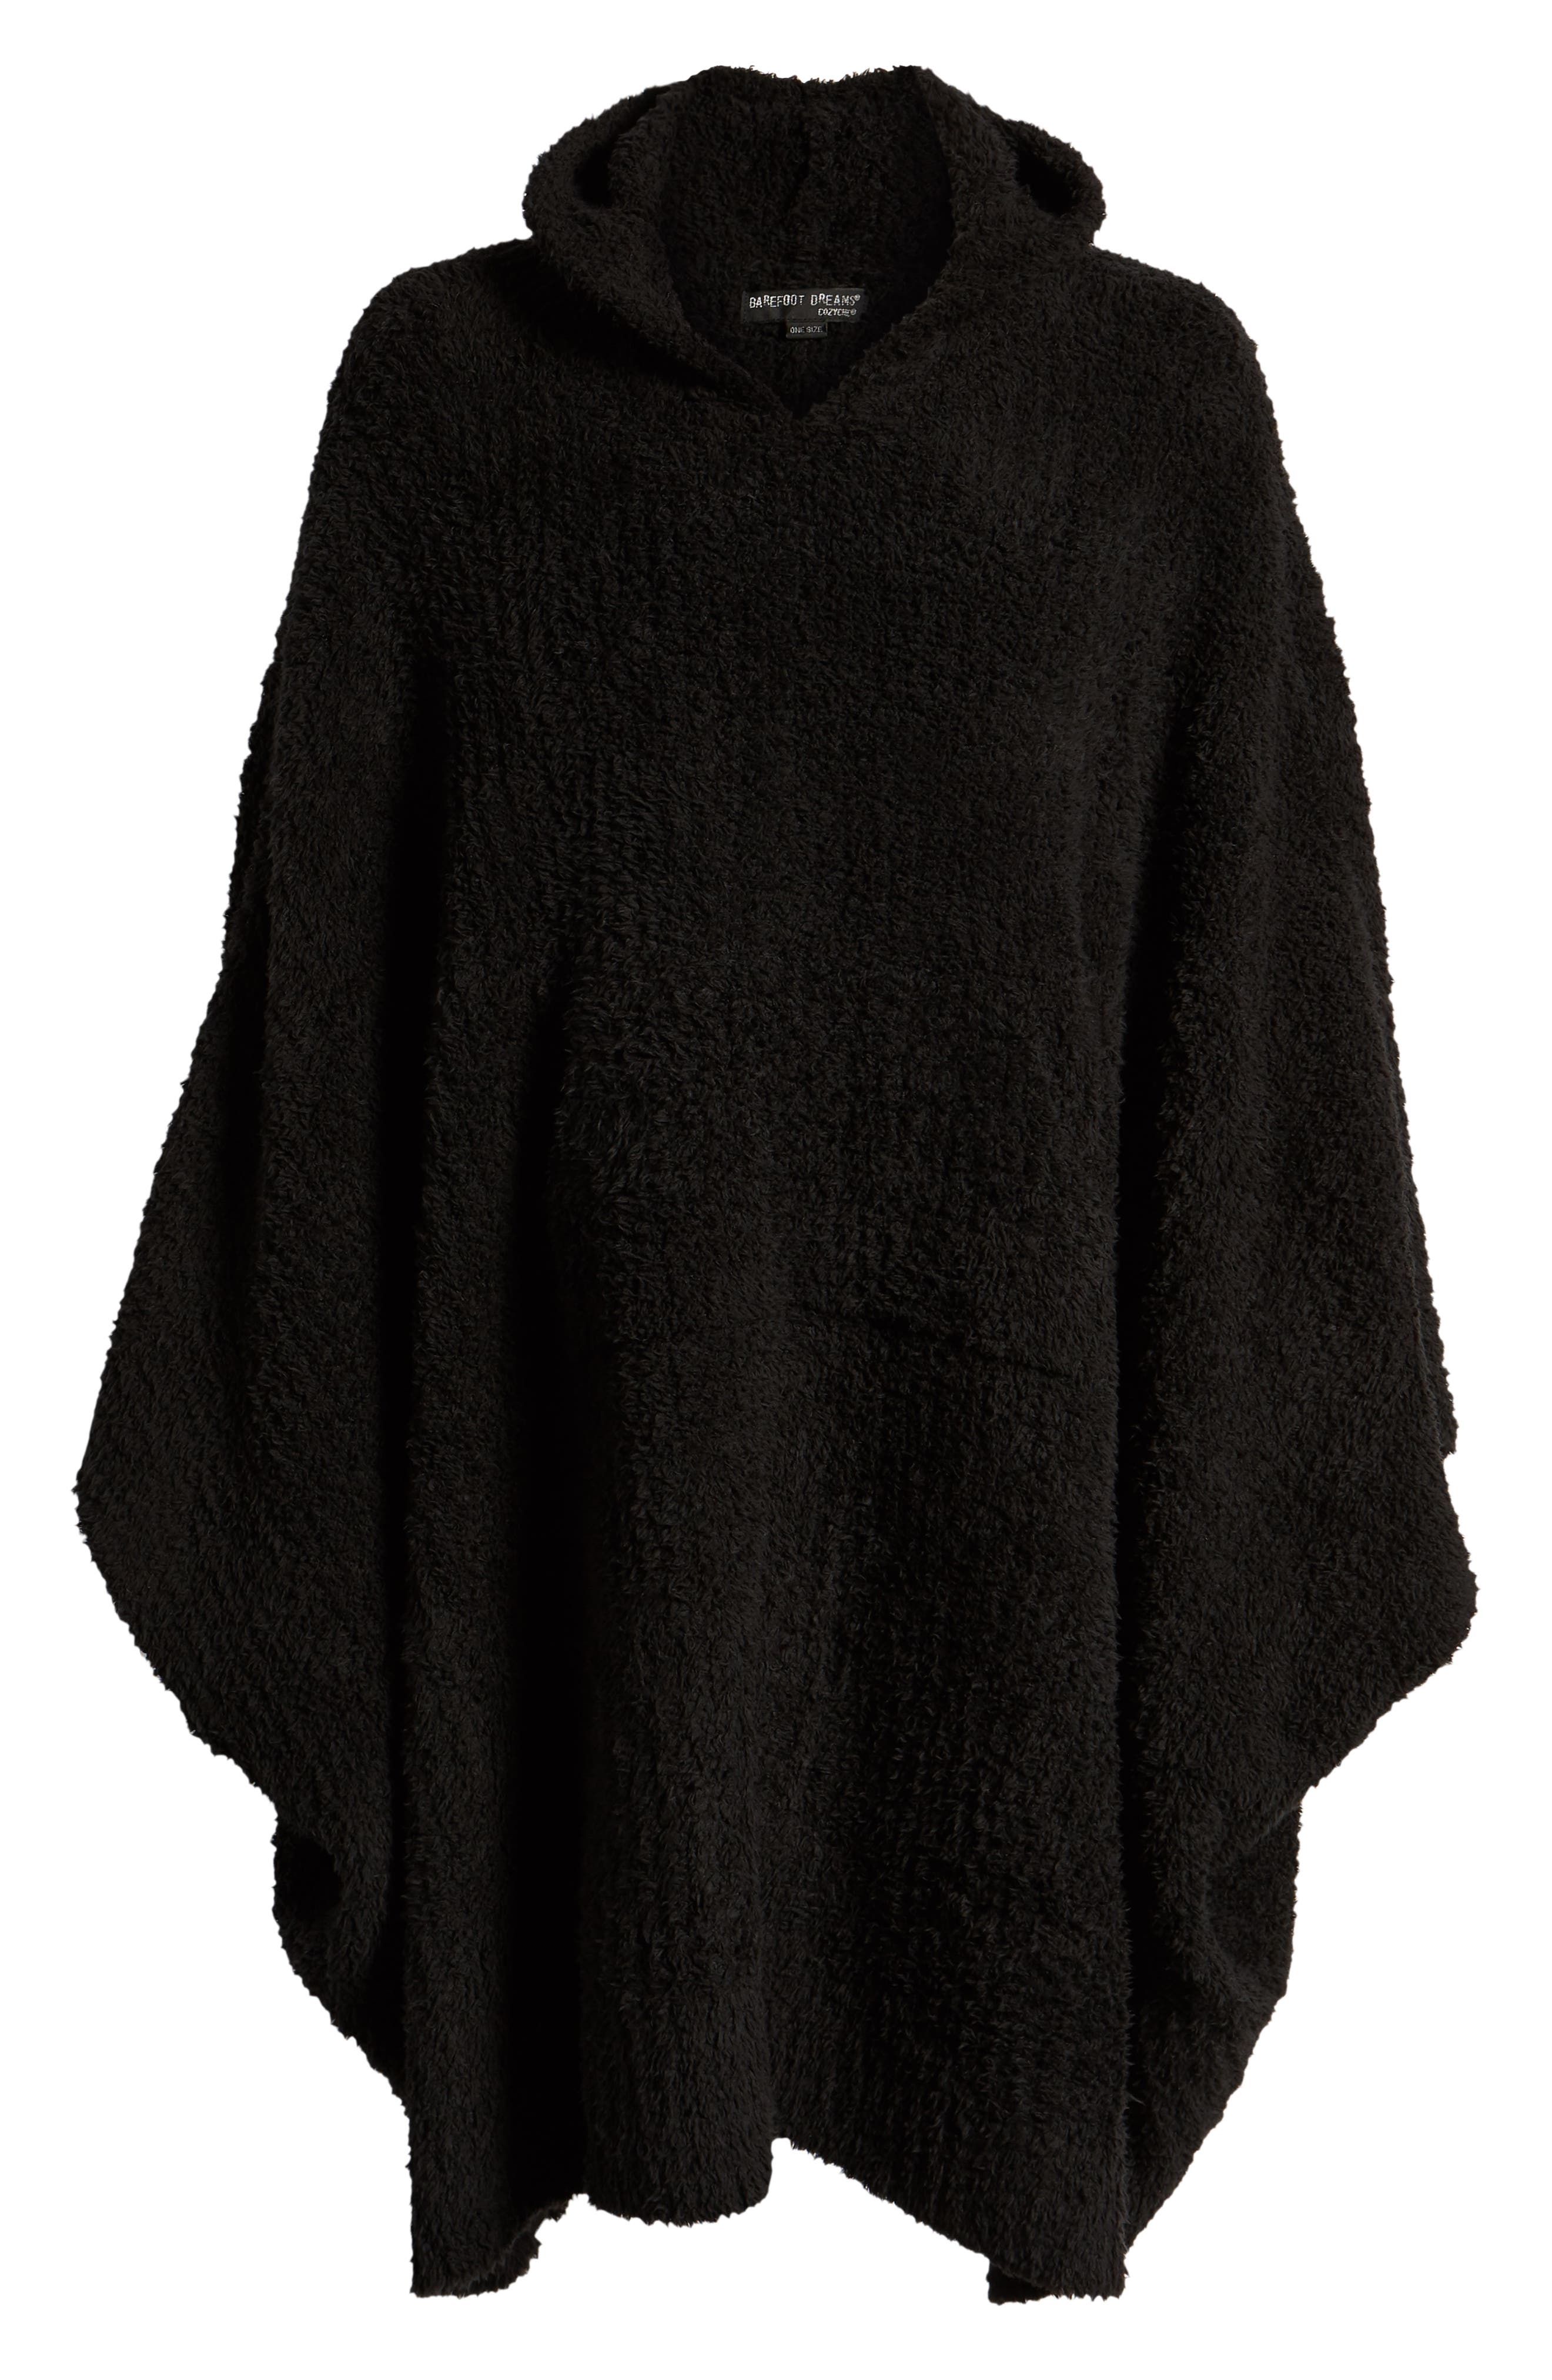 BAREFOOT DREAMS<SUP>®</SUP>,                             Barefoot Dreams Cozy Chic Poncho Robe,                             Alternate thumbnail 6, color,                             001